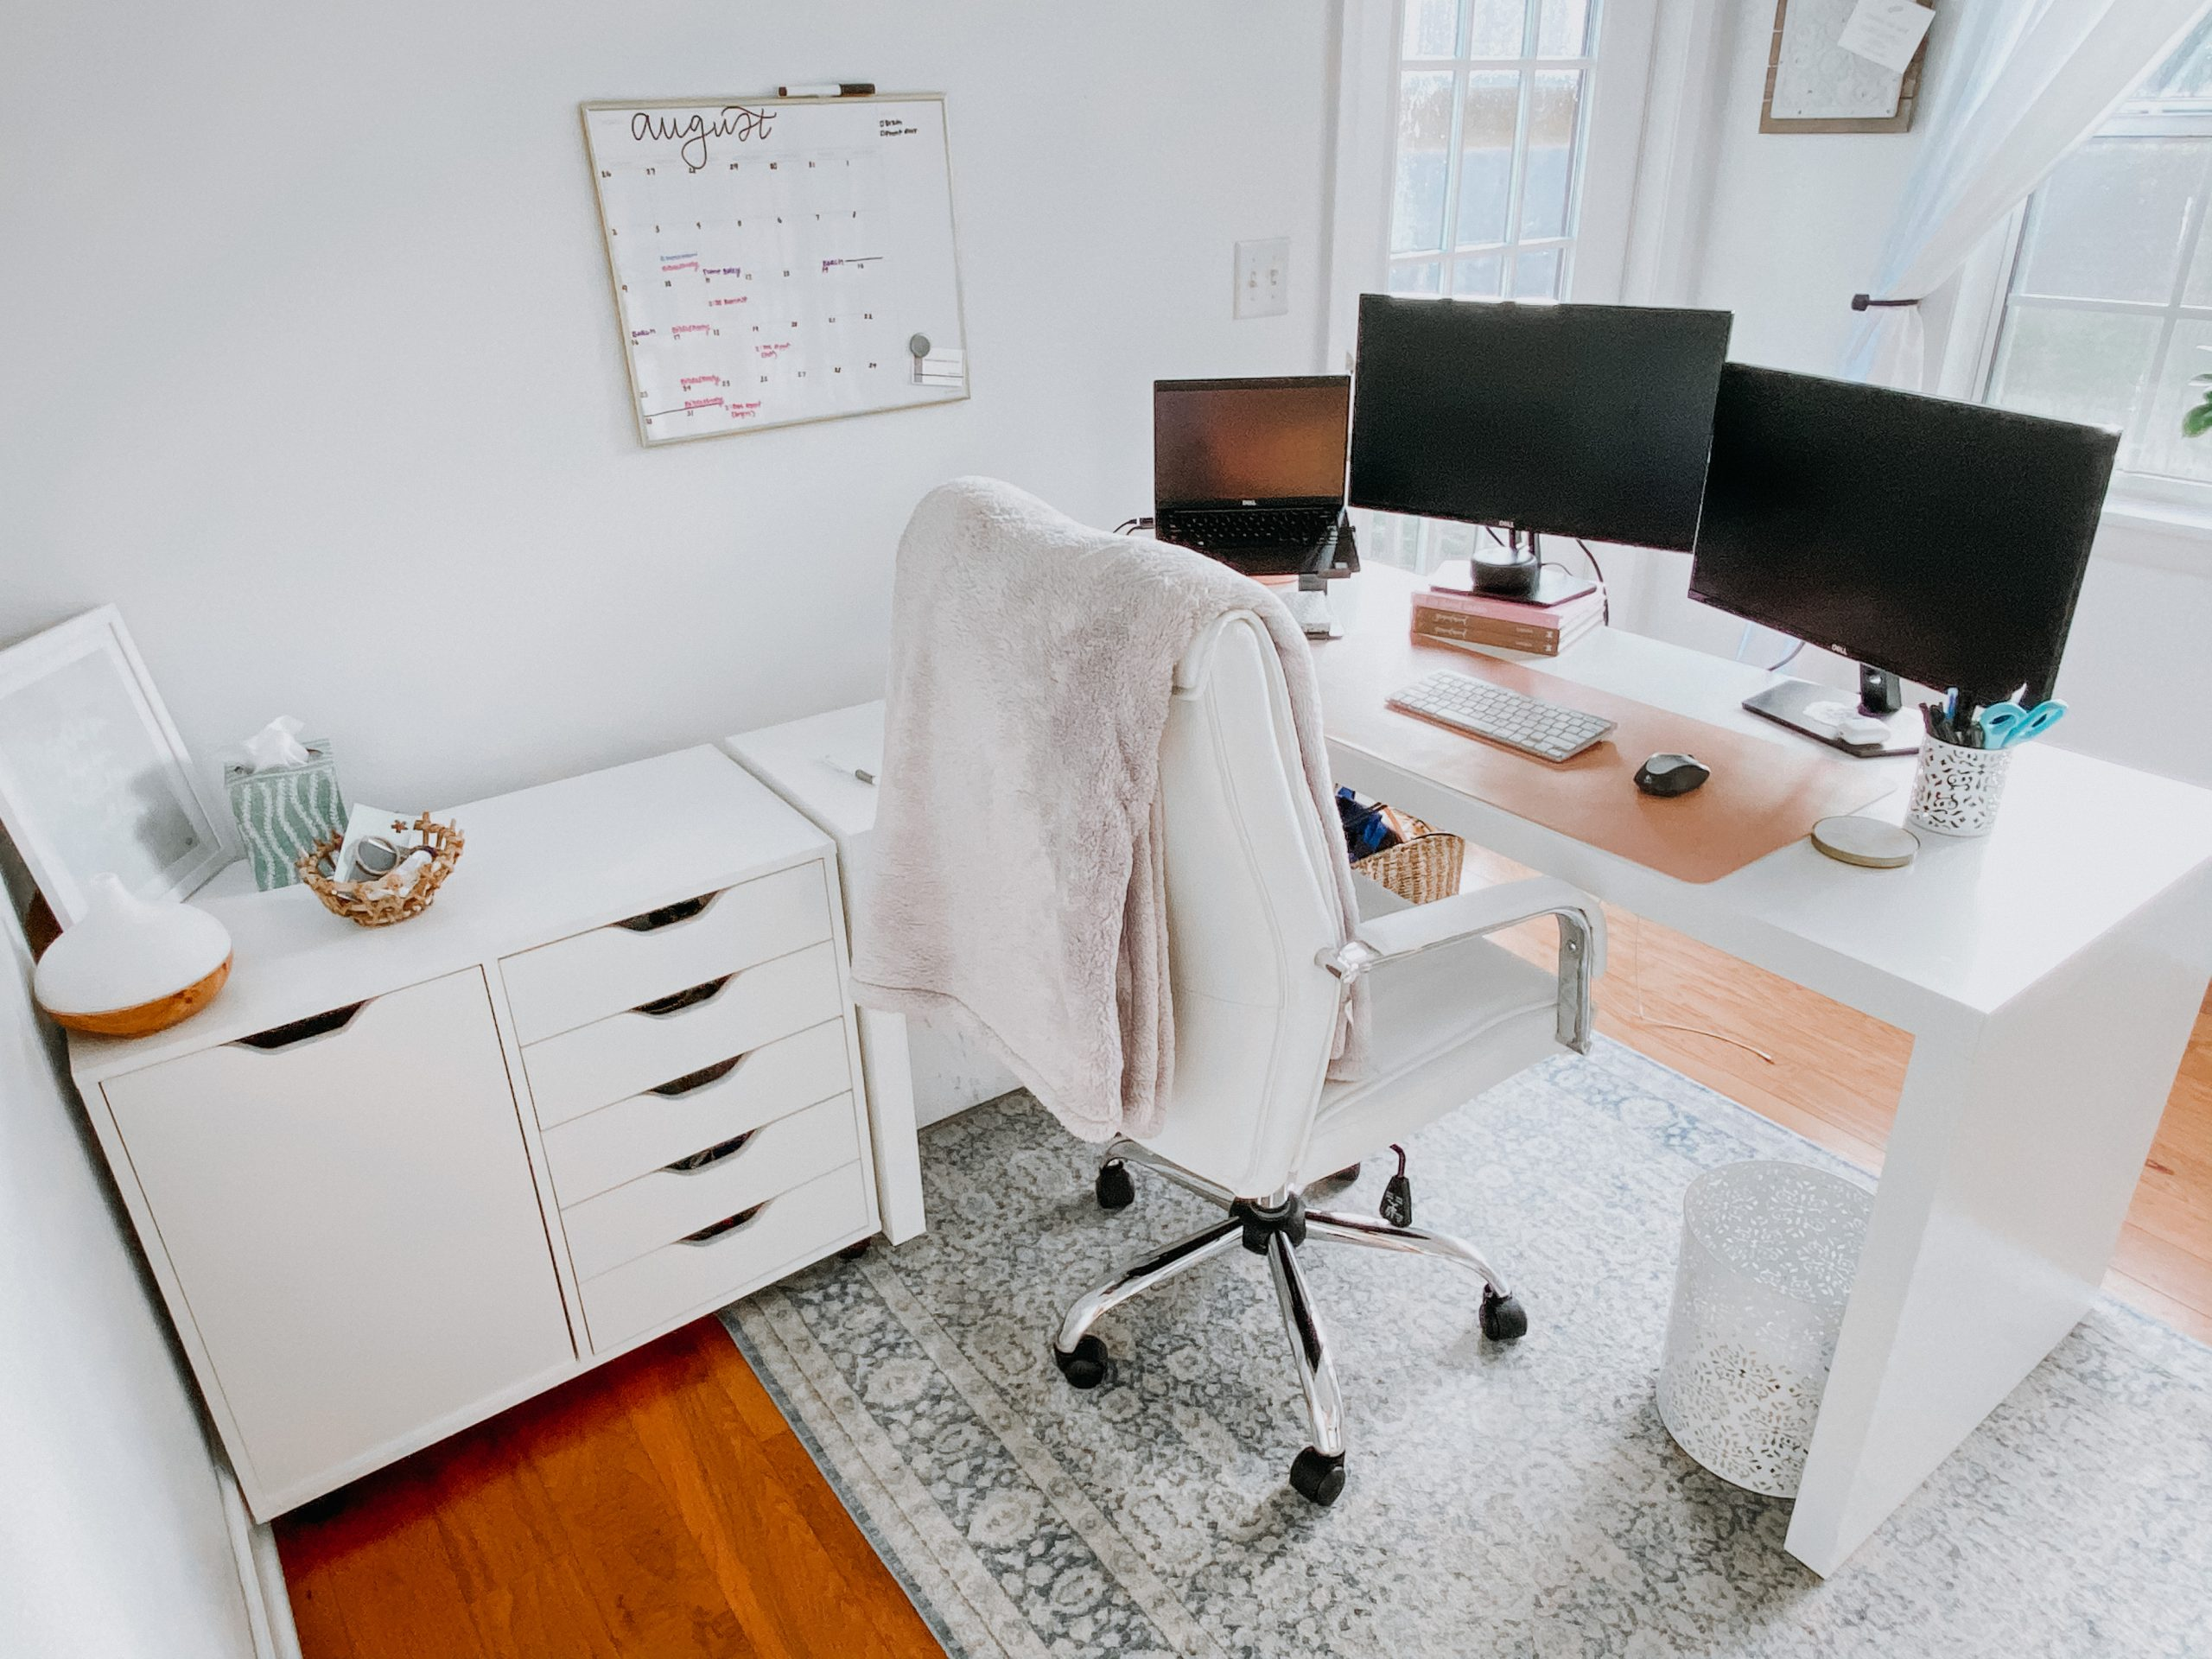 10 Home Office Essentials - NatalieHab.com: With remote work becoming the new norm, I've curated a list of my home office essentials. These 10 items are the key to success as a remote employee.